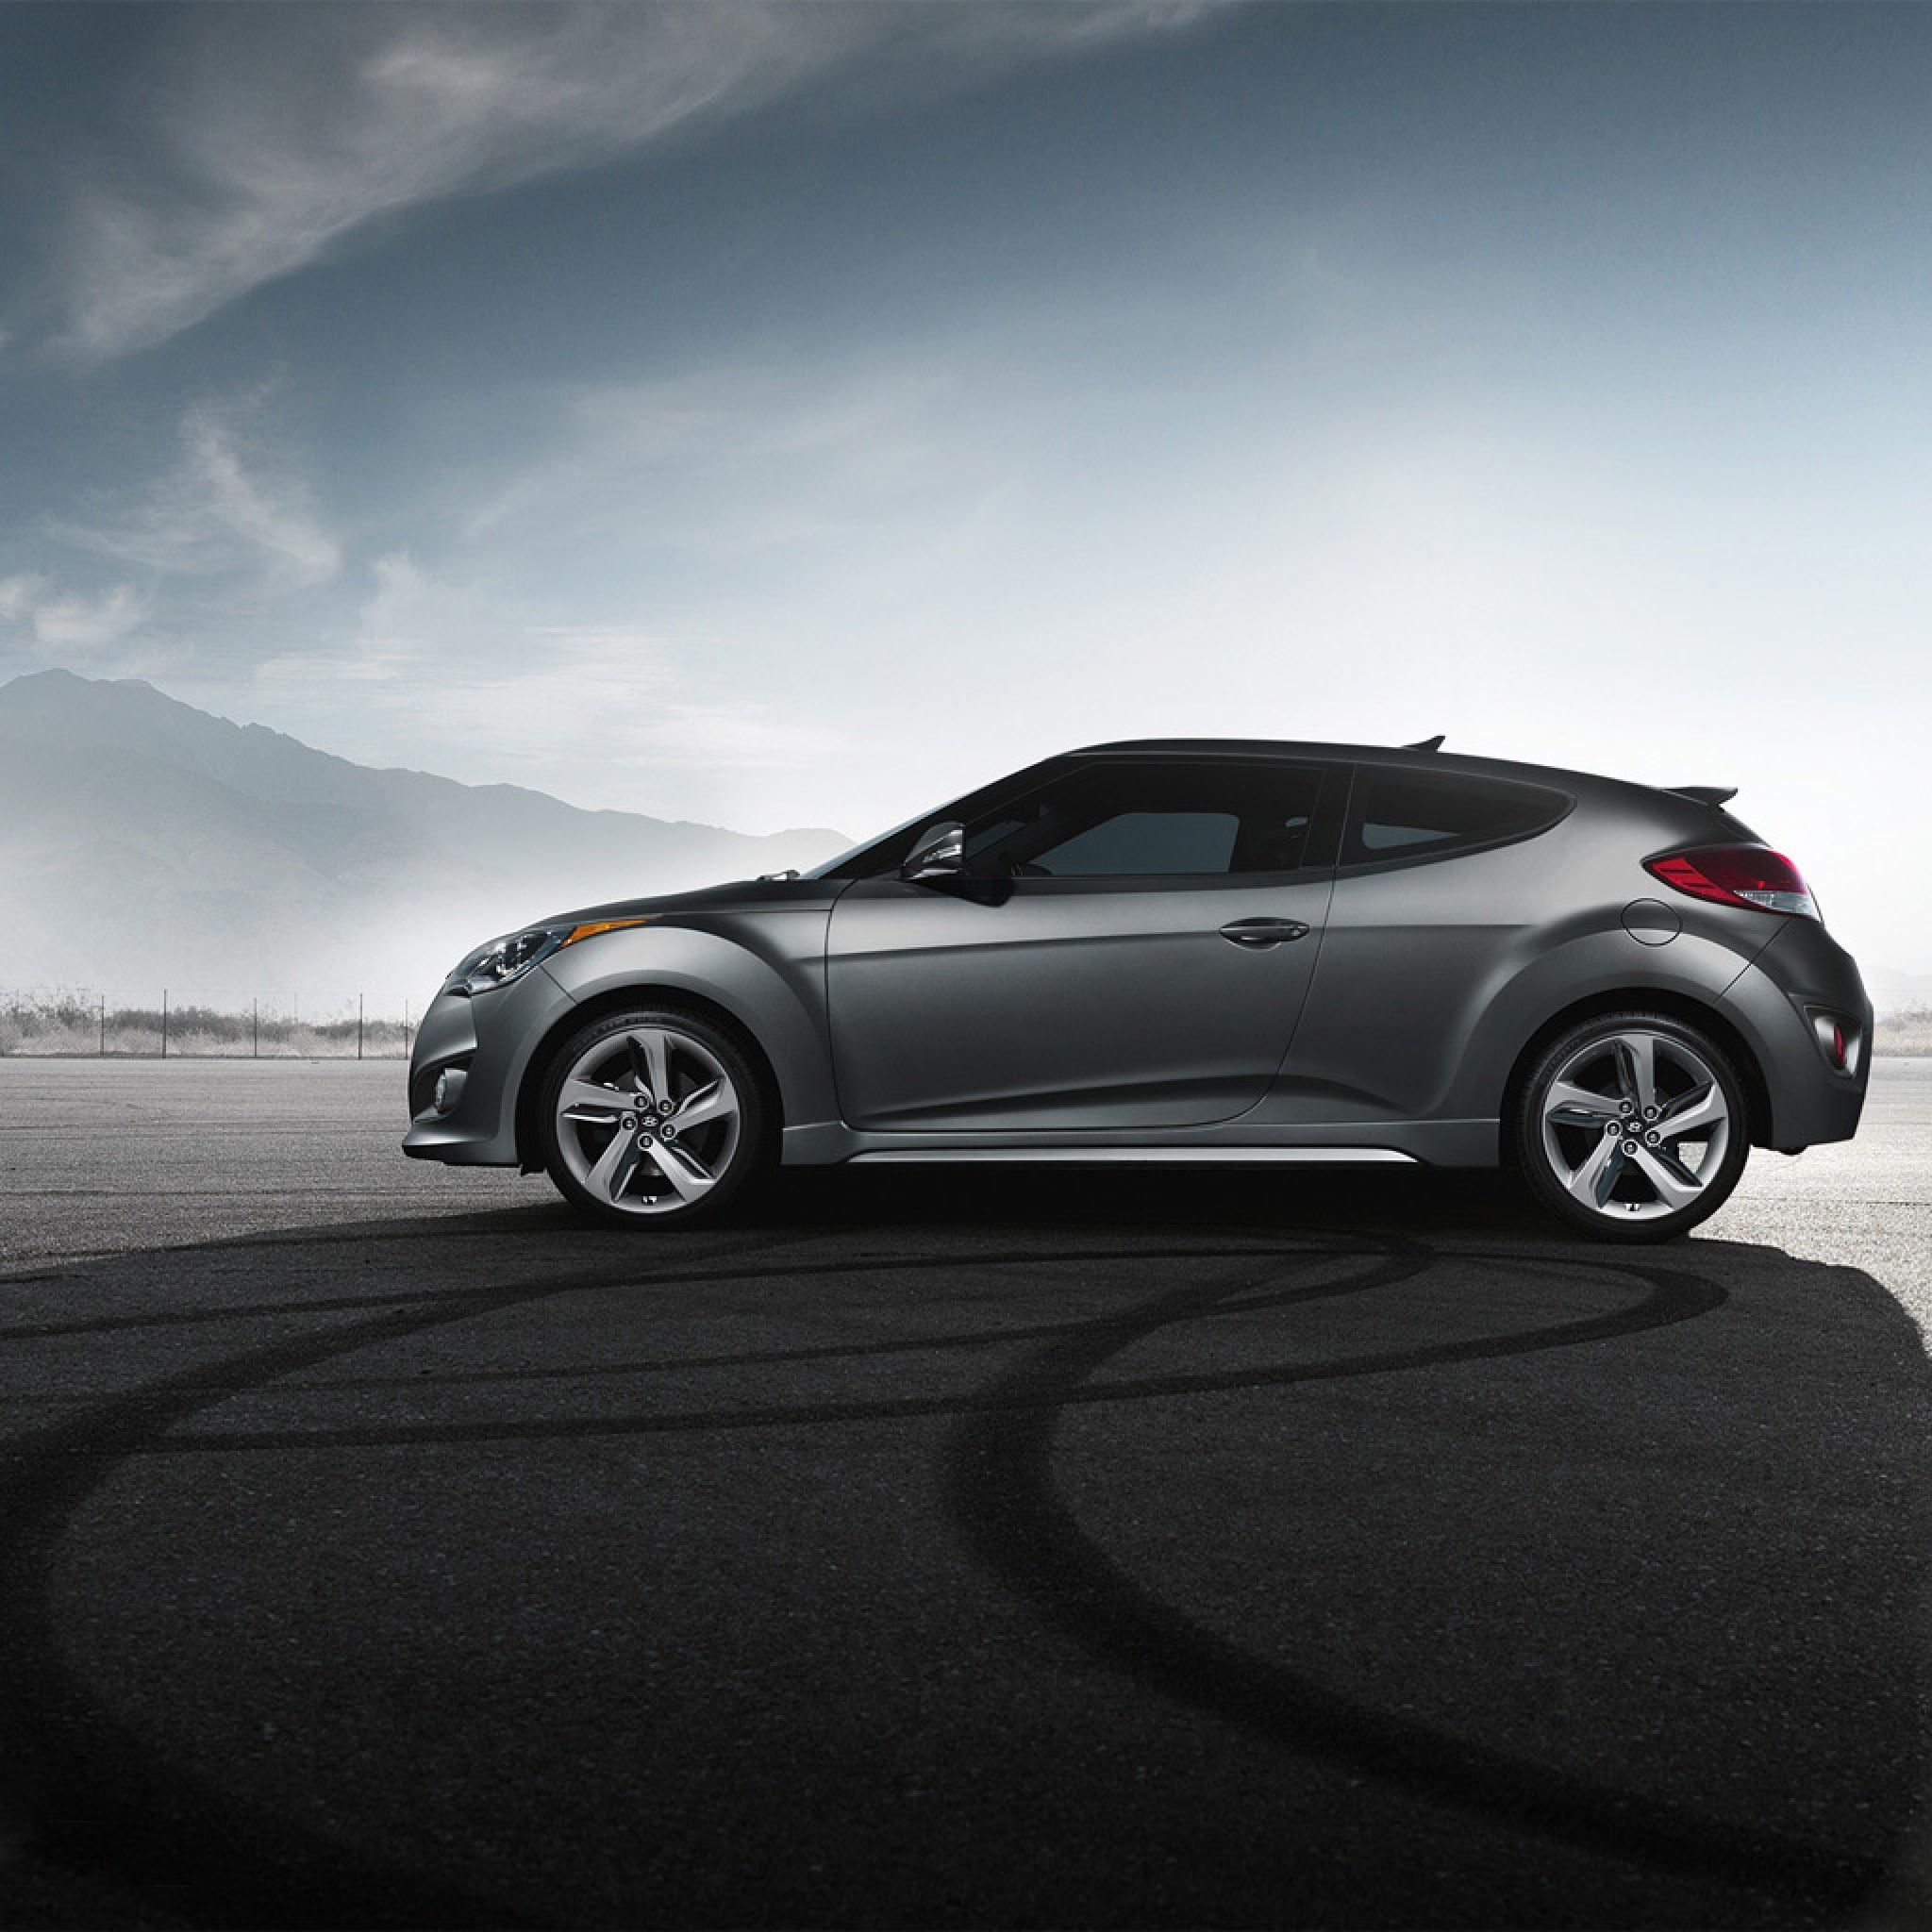 Hyundai Veloster Wallpapers Top Free Hyundai Veloster Backgrounds Wallpaperaccess